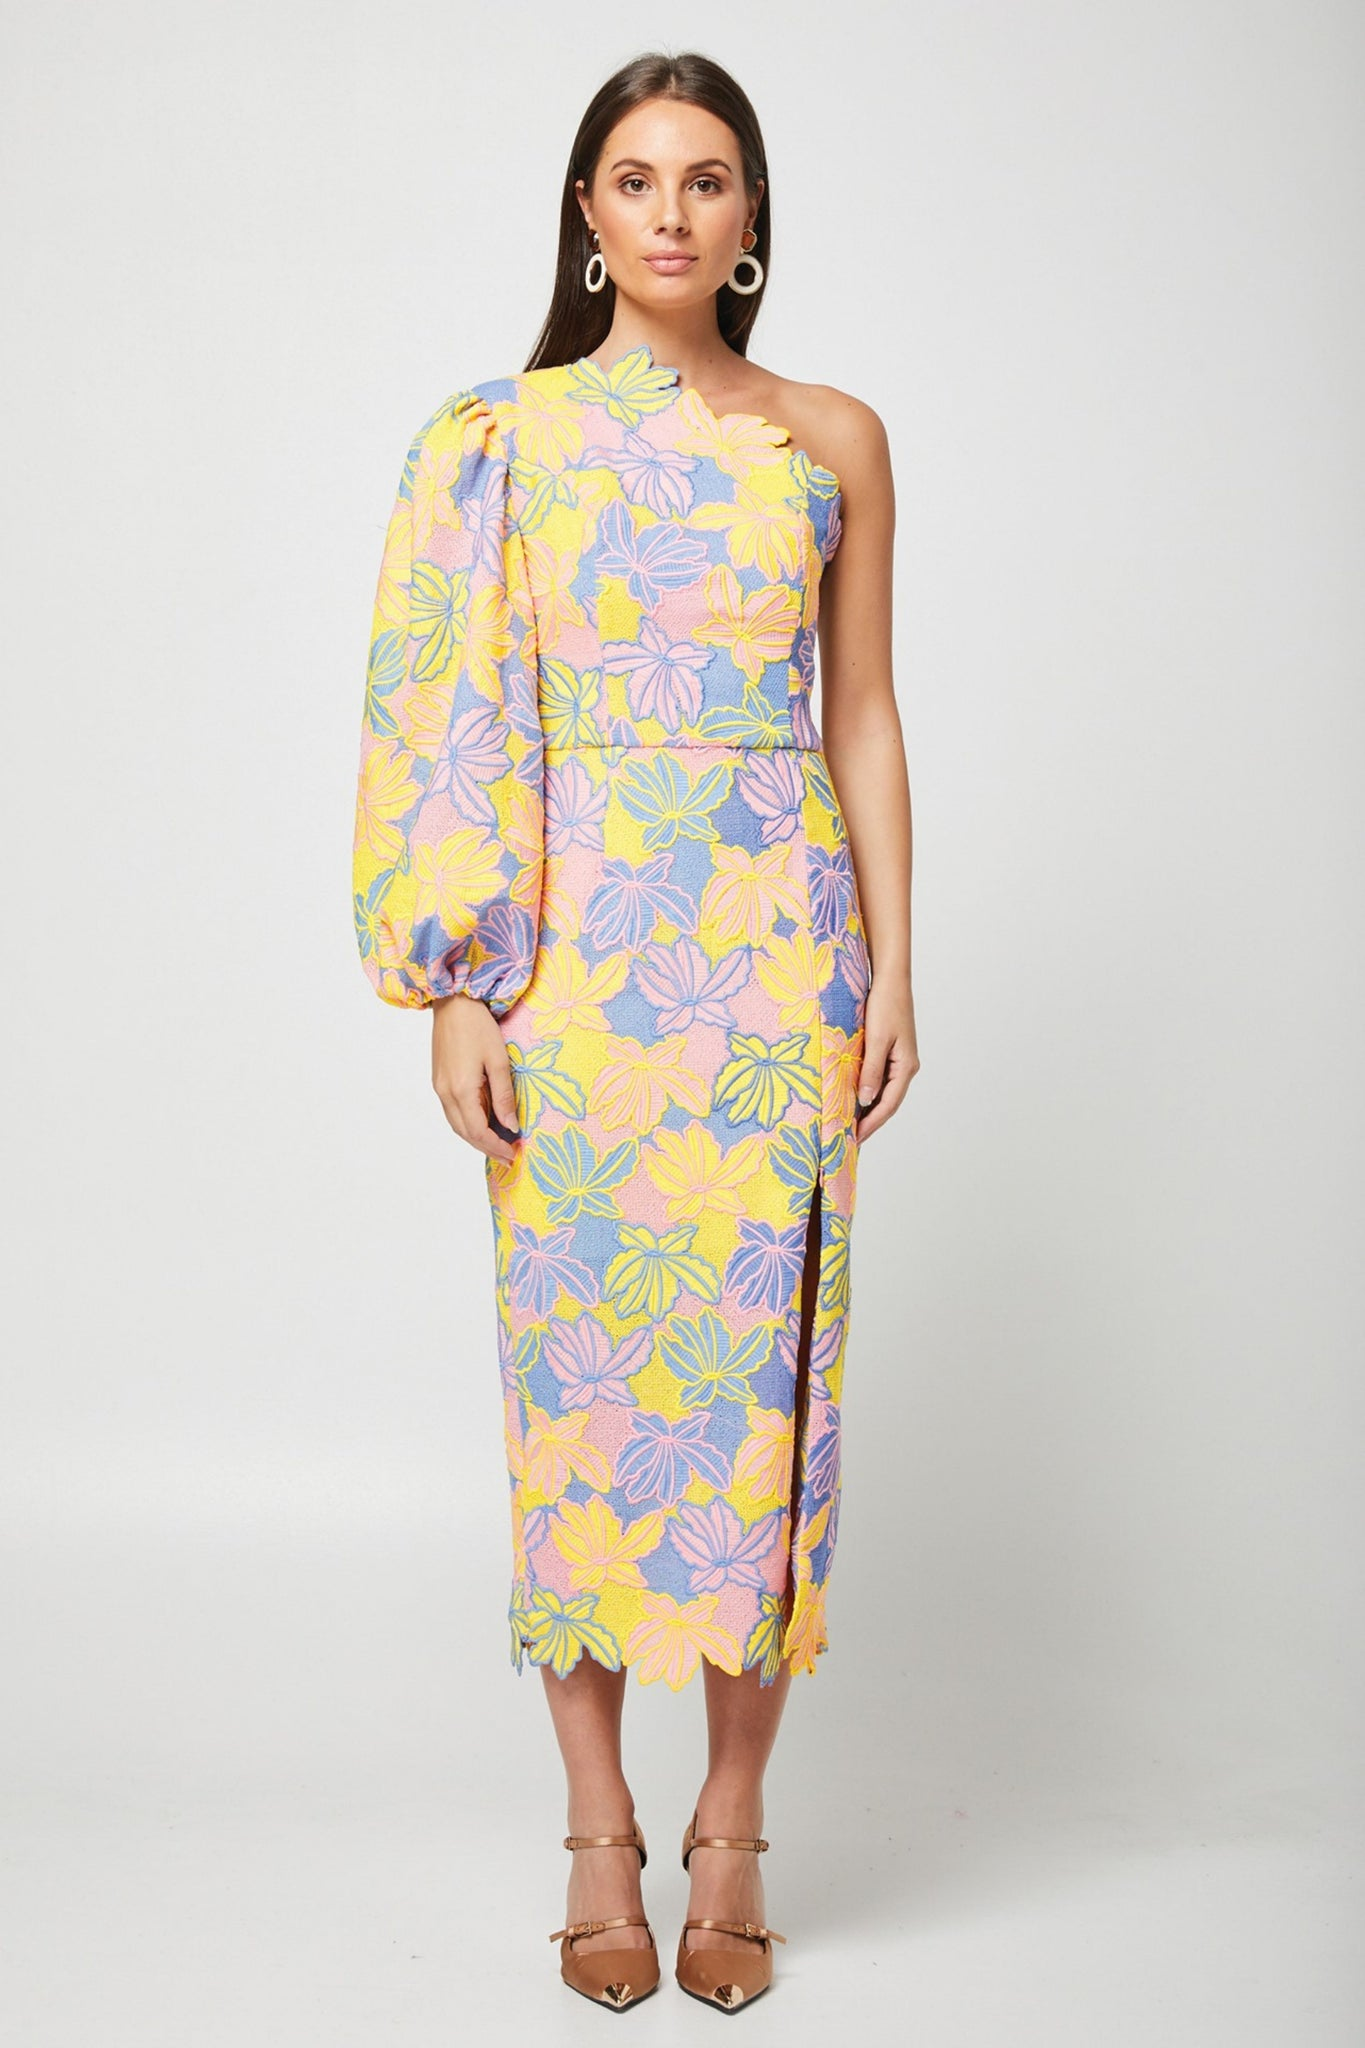 Educe Dress - Multi Pastel